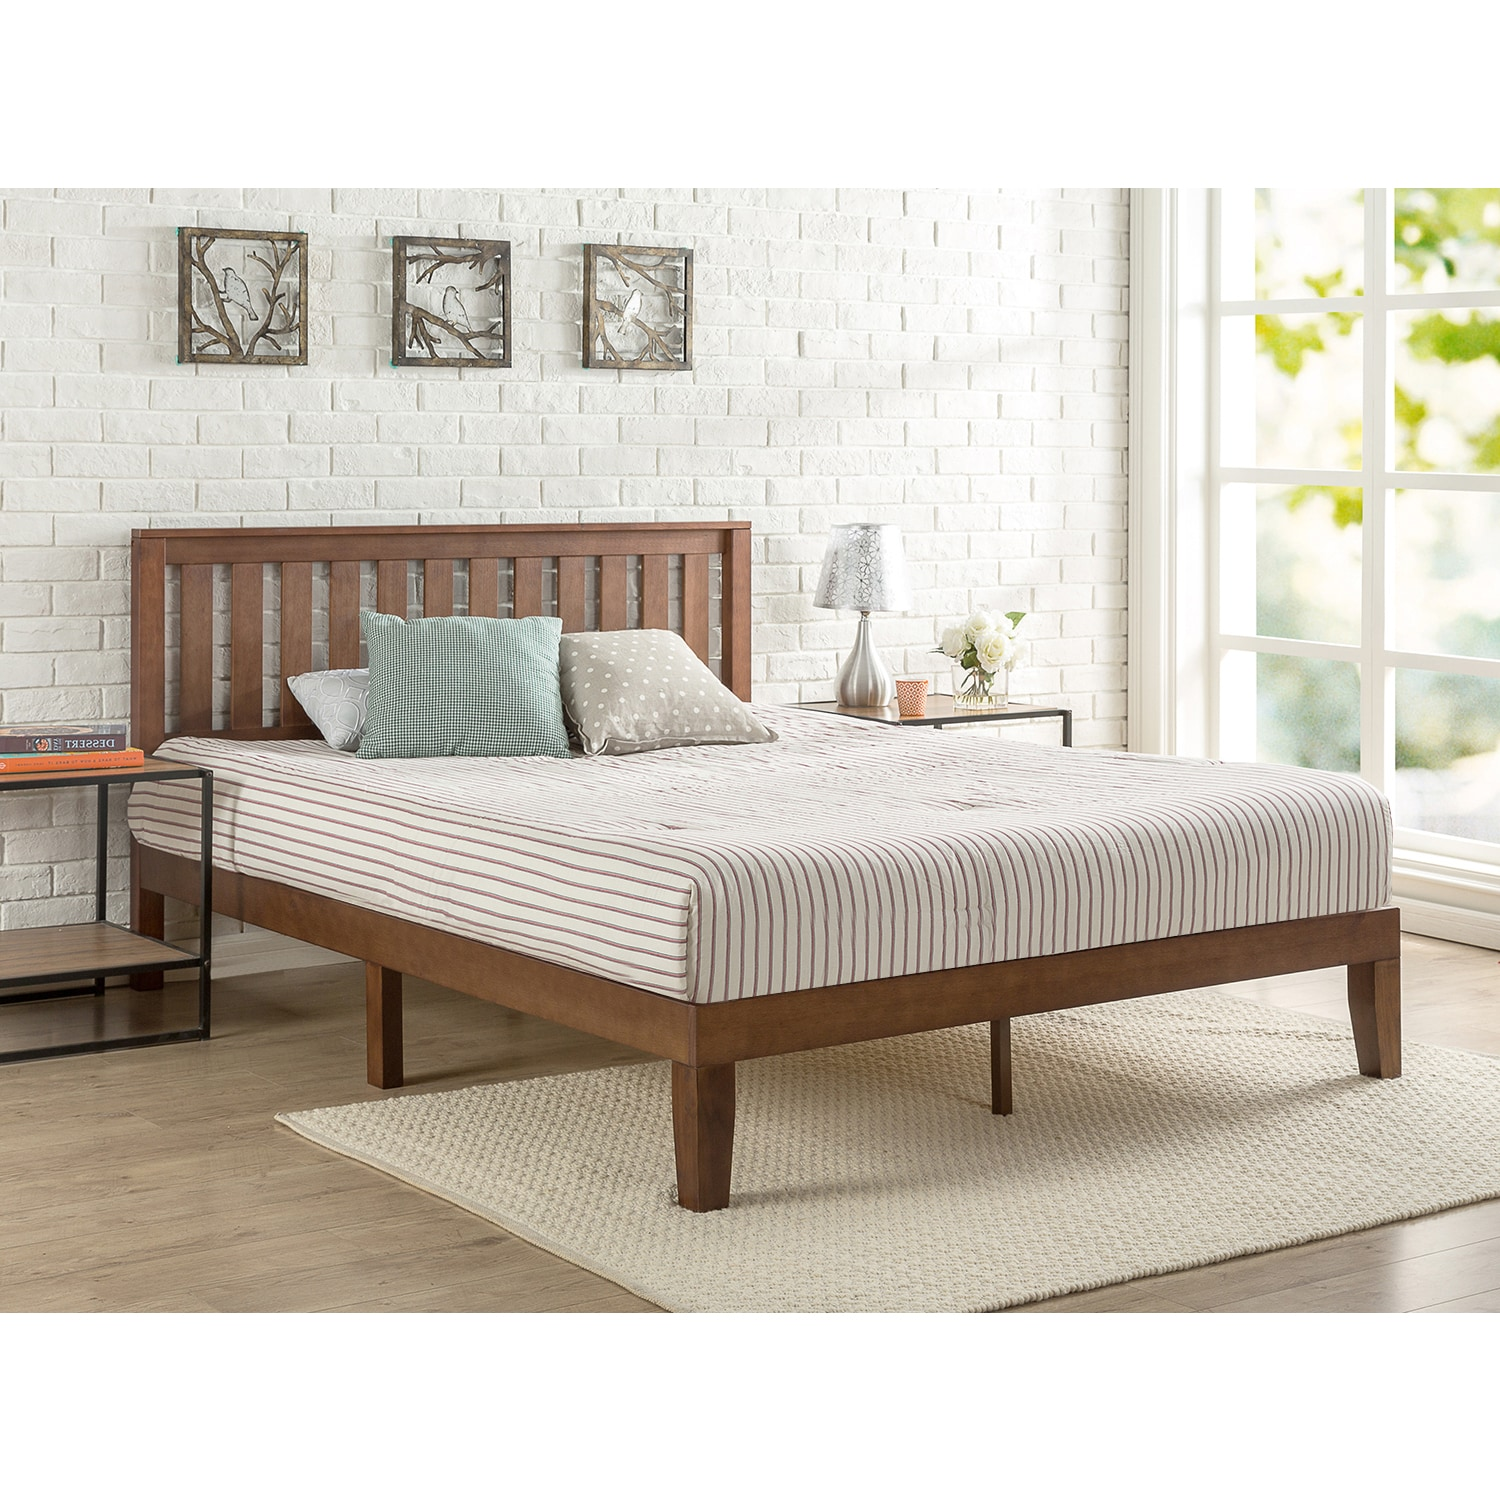 online retailer deb1c e480f Priage by Zinus Antique Espresso Solid Wood Platform Bed with Headboard